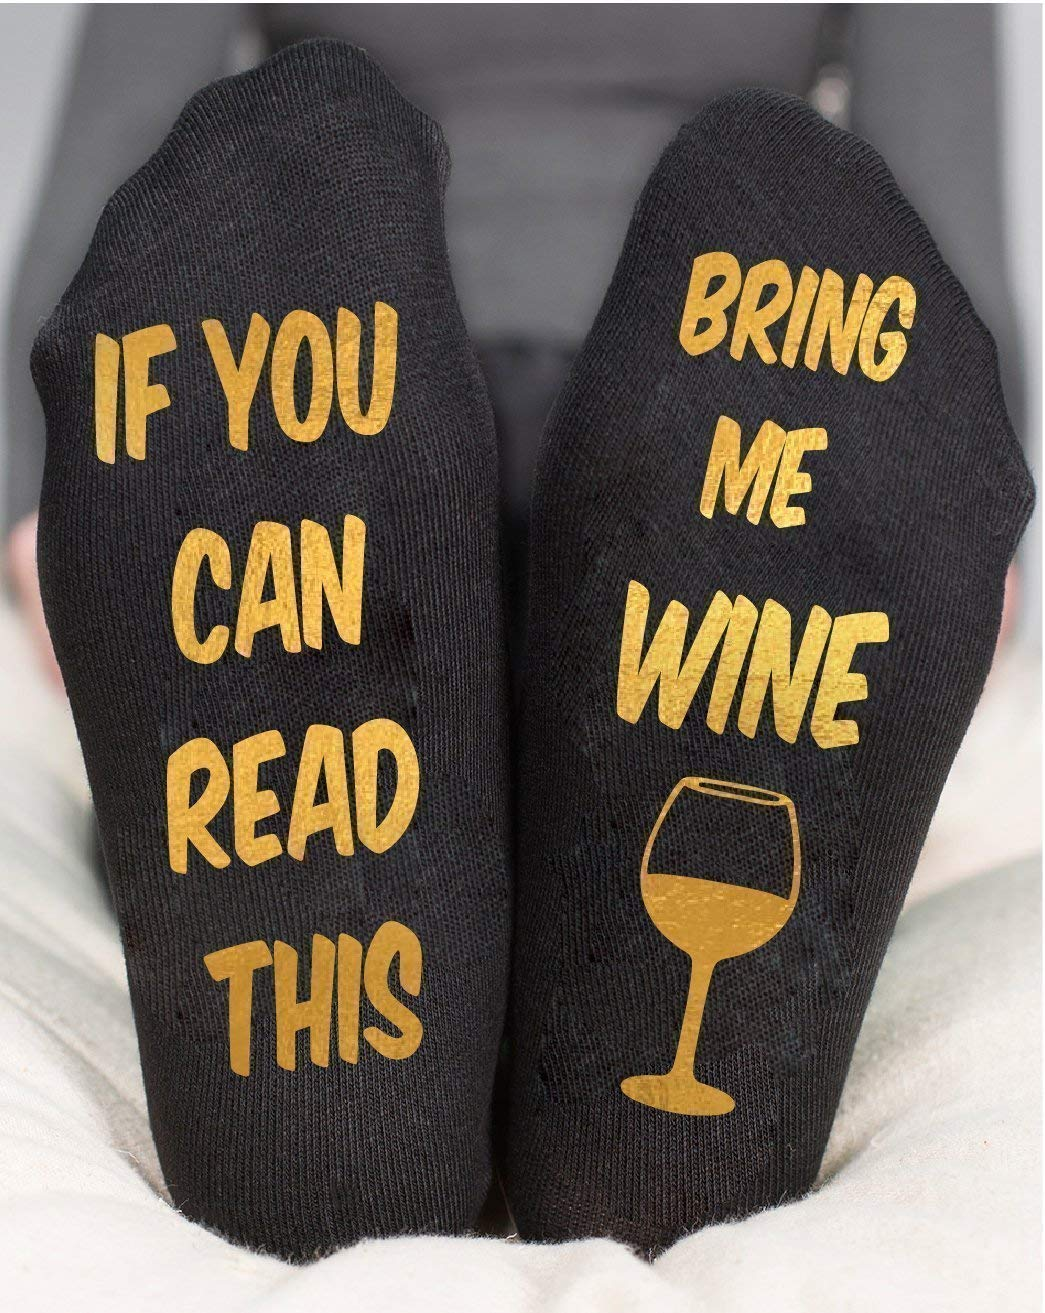 Bring Me Wine Socks Funny Birthday Party Gift For Women's